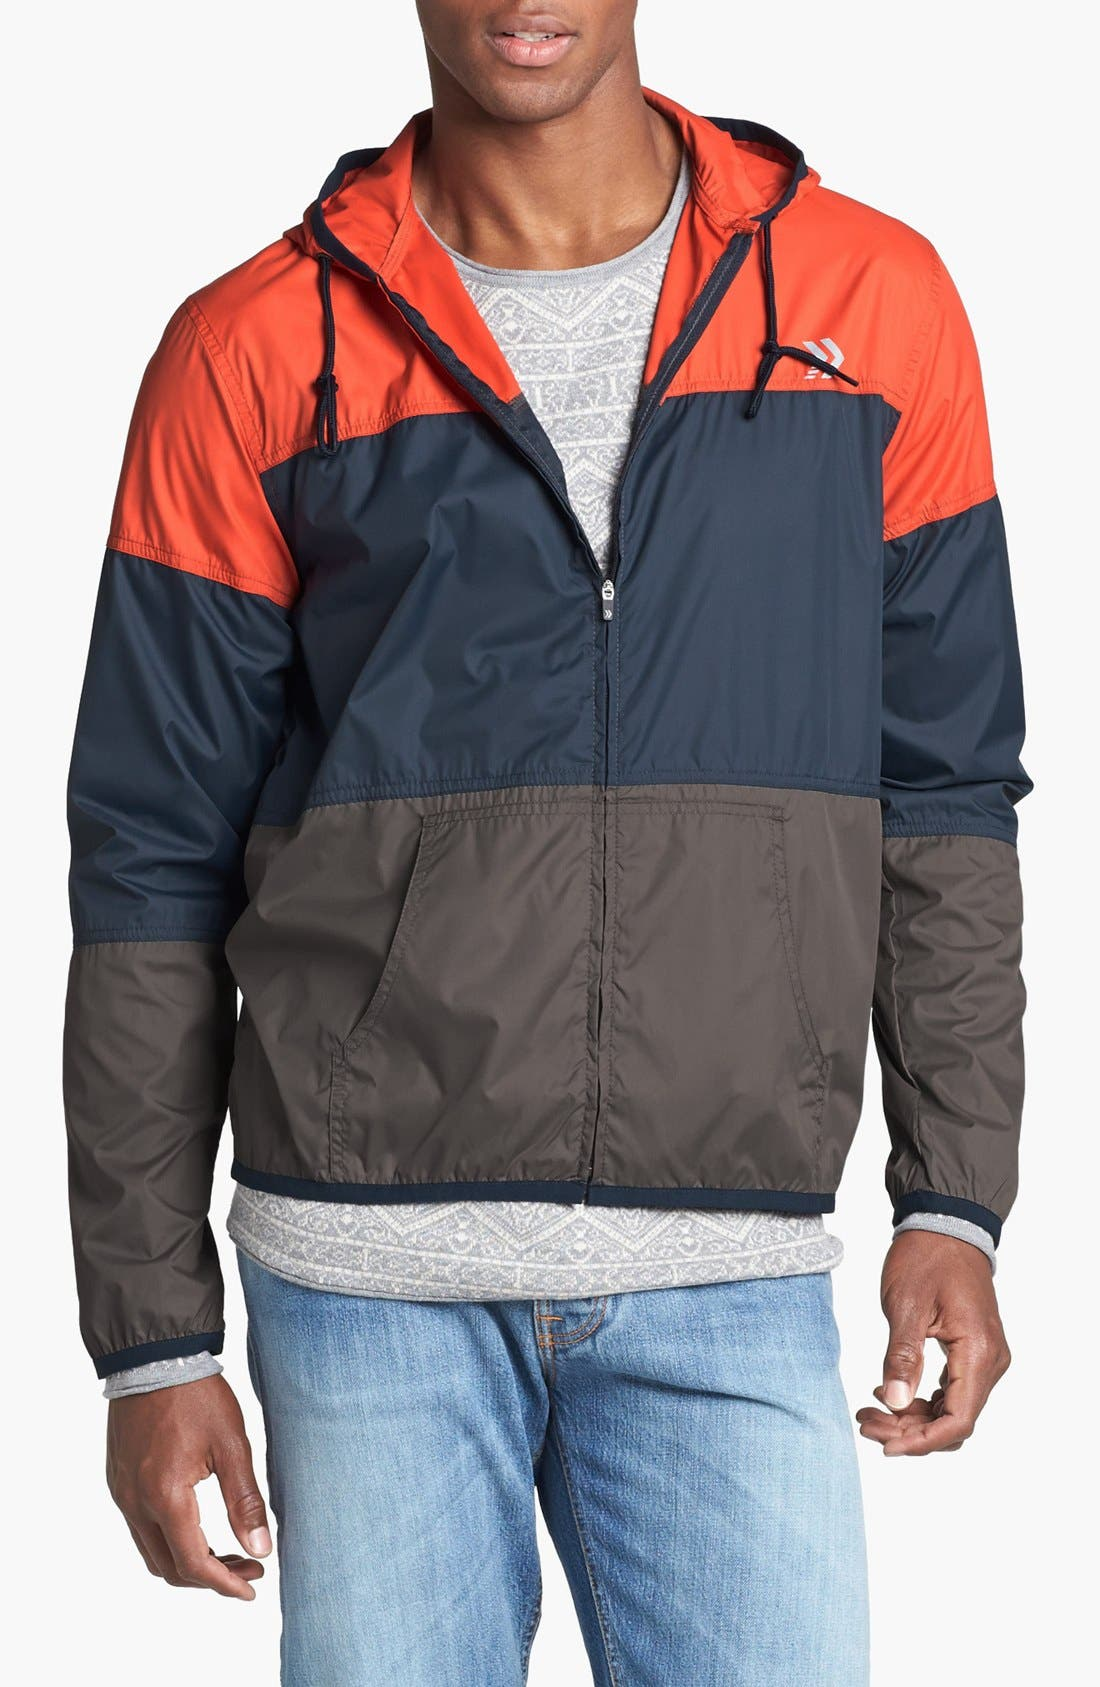 Alternate Image 1 Selected - Athletic Recon 'General' Colorblock Windbreaker